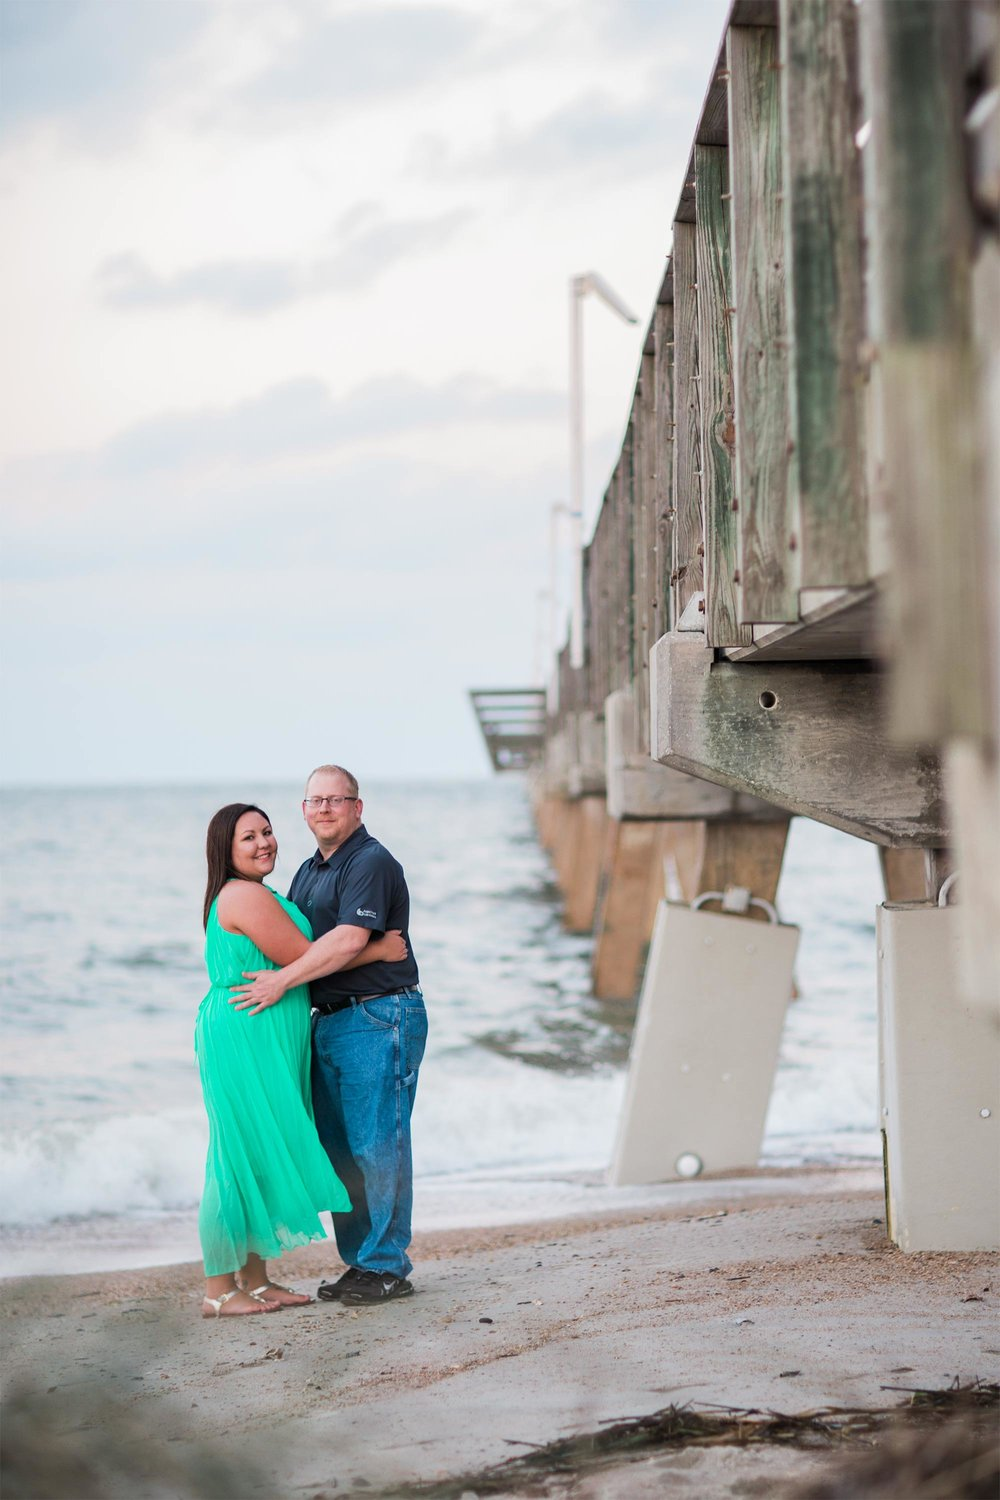 Nikki_Jeremy_Fort_Clinch_Engagement_Photography_16-Edit.jpg